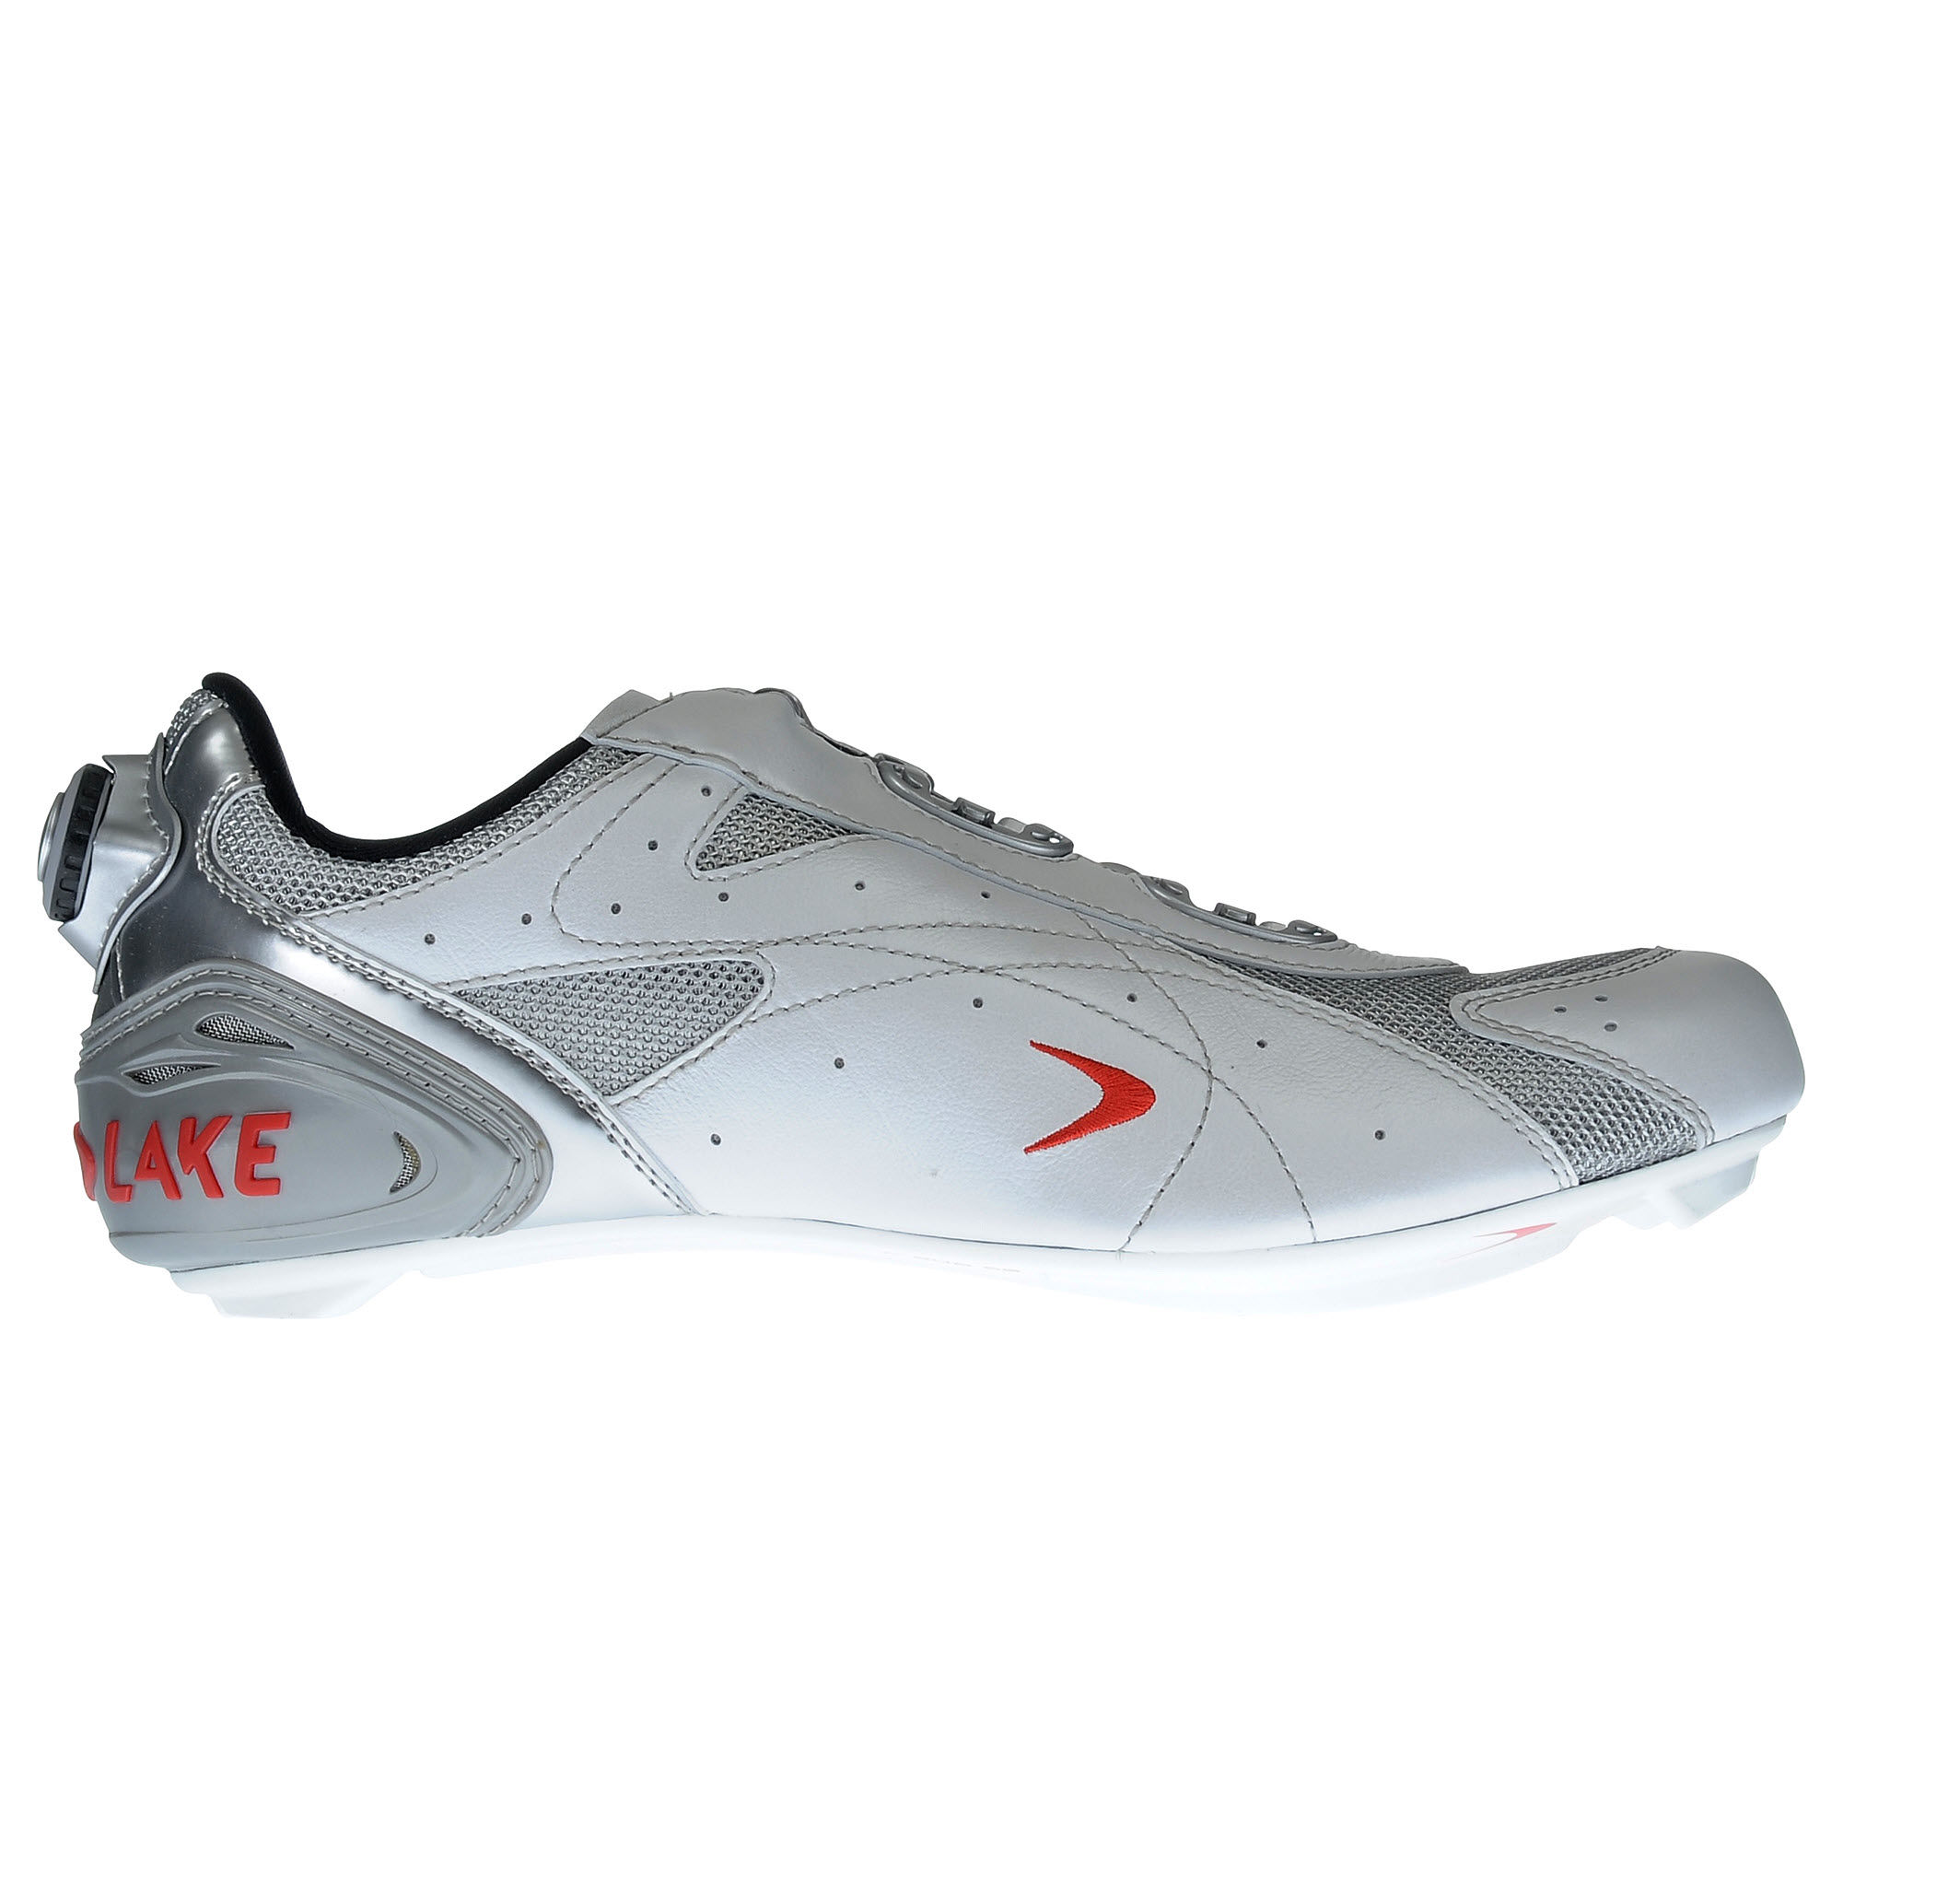 cx330c road cycling shoes